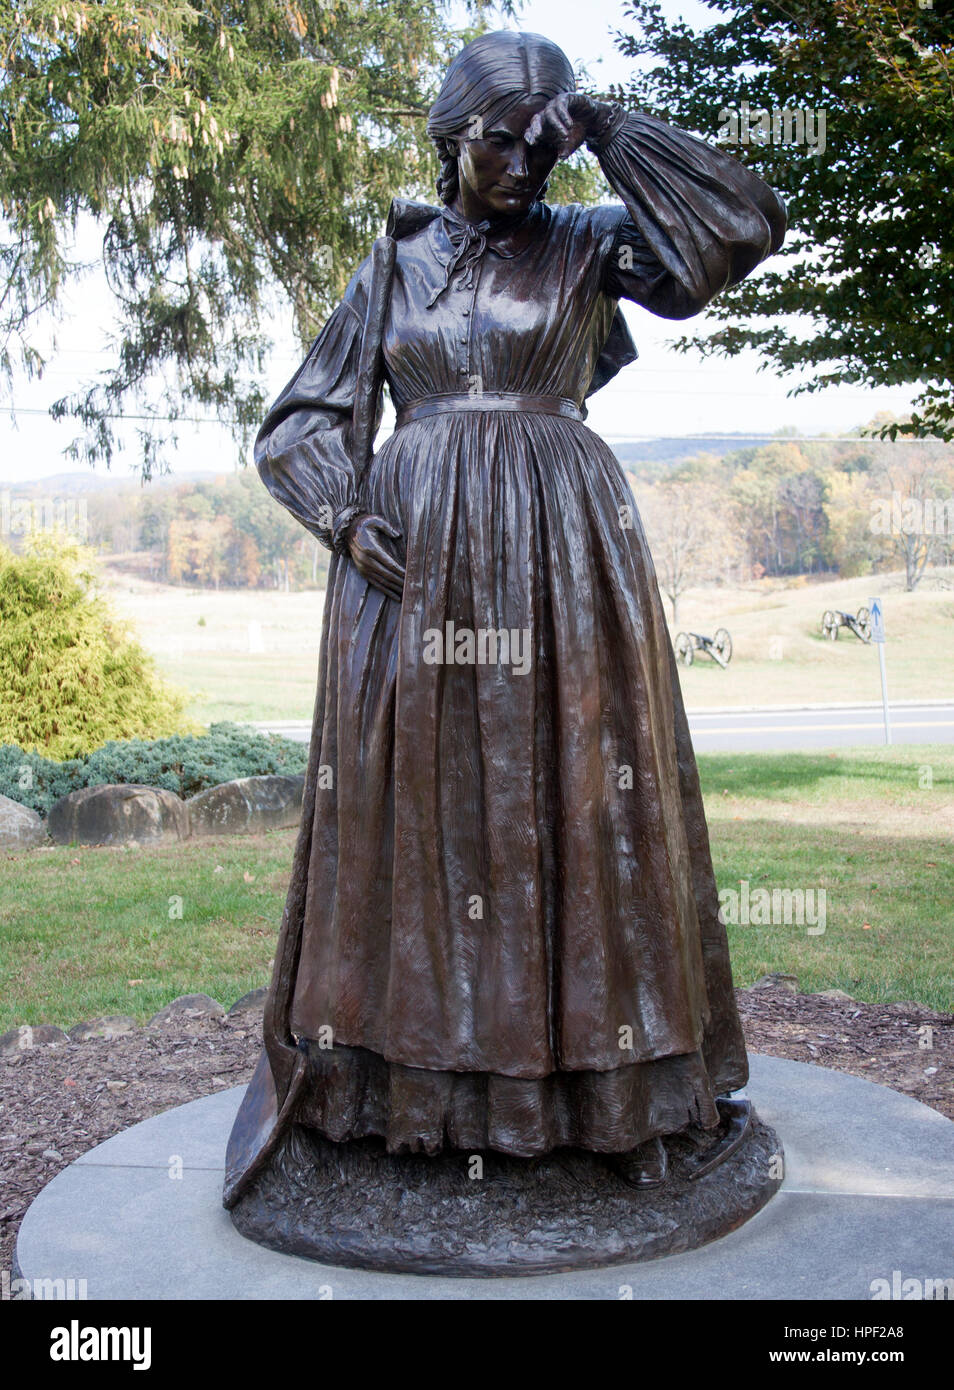 Statue of the Pregnant Gravedigger Elizabeth Thorn in Gettysburg Pennsylvania - Stock Image